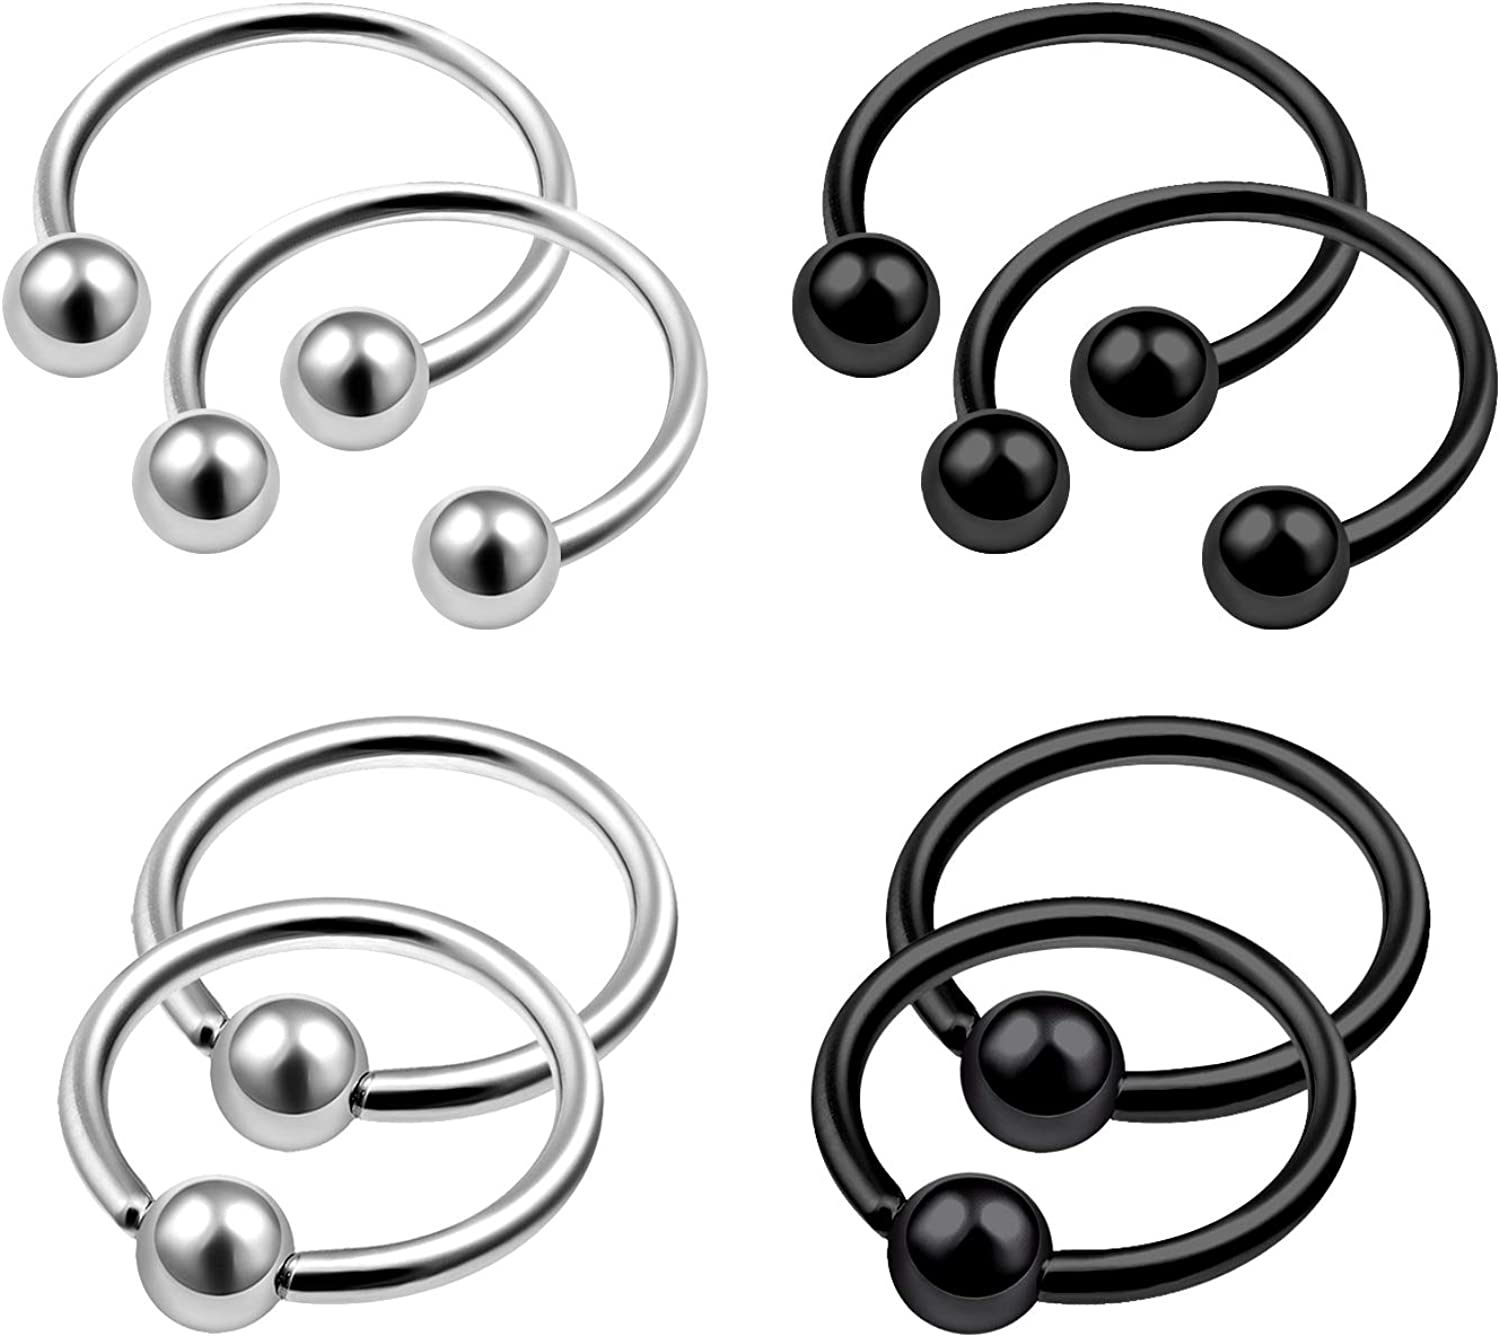 MATIGA 8Pcs Steel Black Anodized 20g Earring Horseshoe Captive Bead Ring Piercing Jewelry Septum Lip Cartilage 3mm Ball More Choices